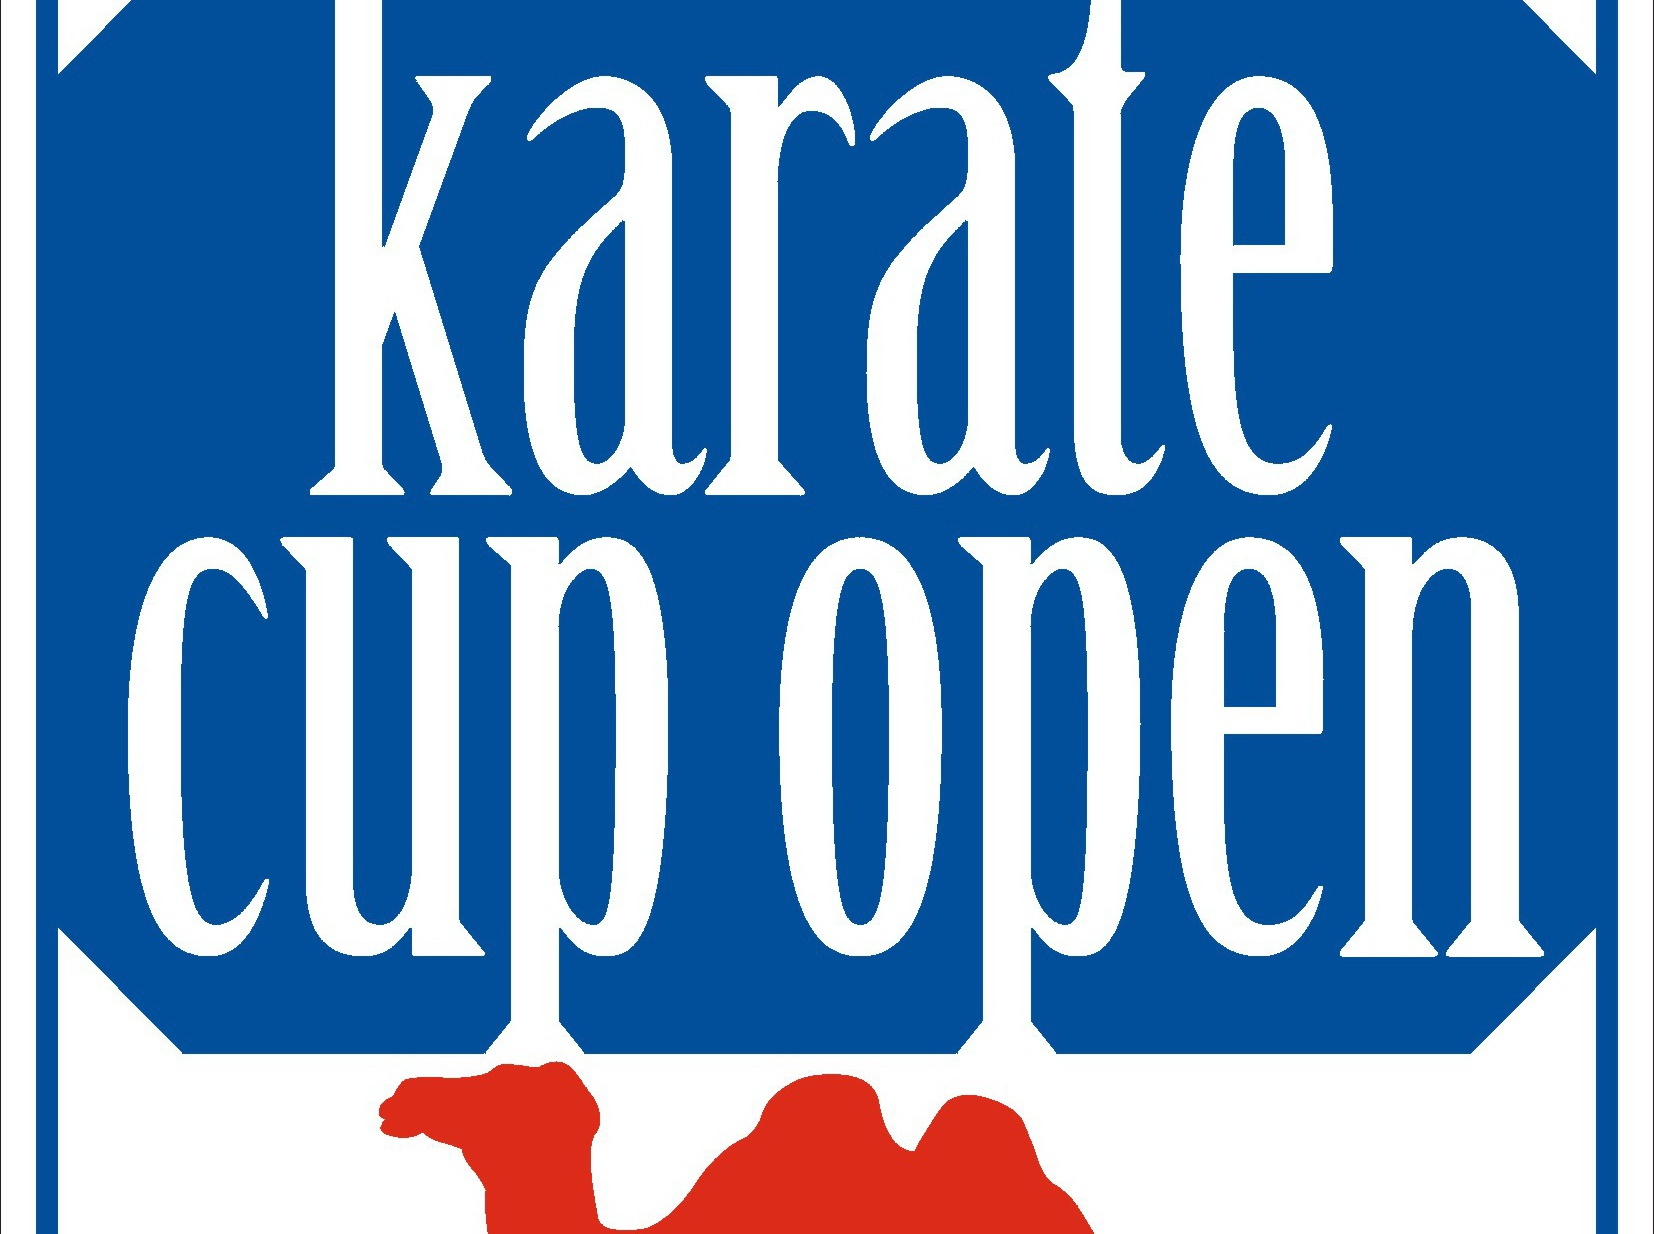 11th Czech Karate Cup Open 2010